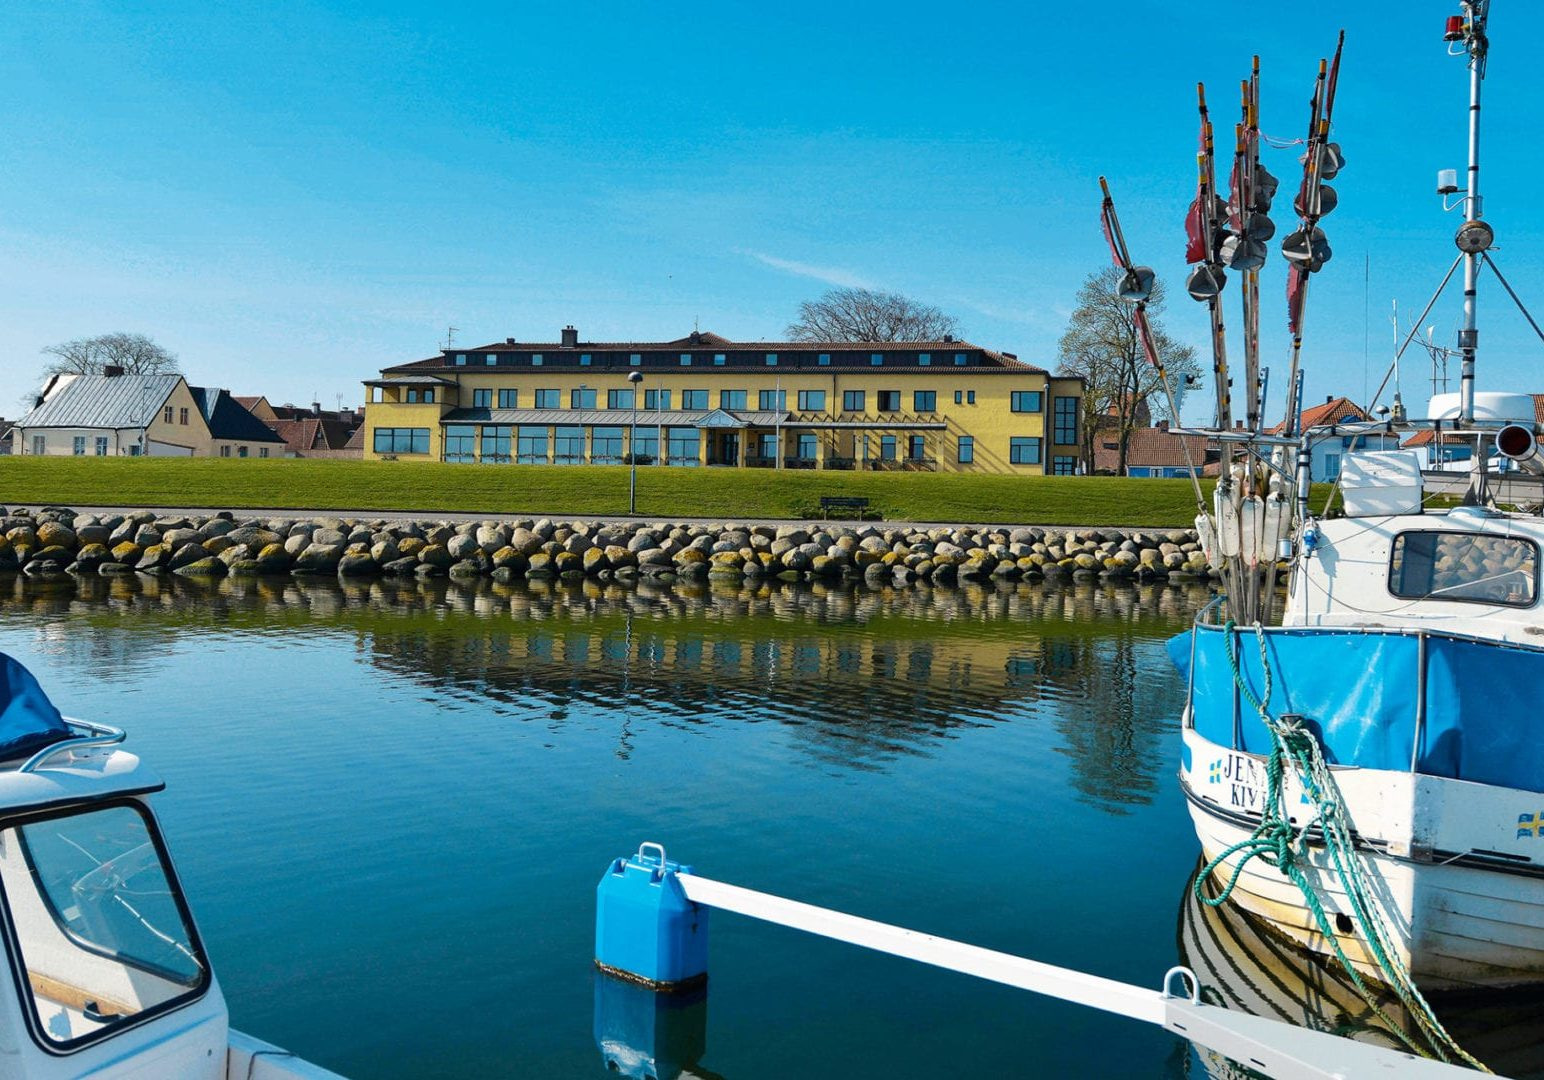 Hotel Svea in Simrishamn seen from the marina.